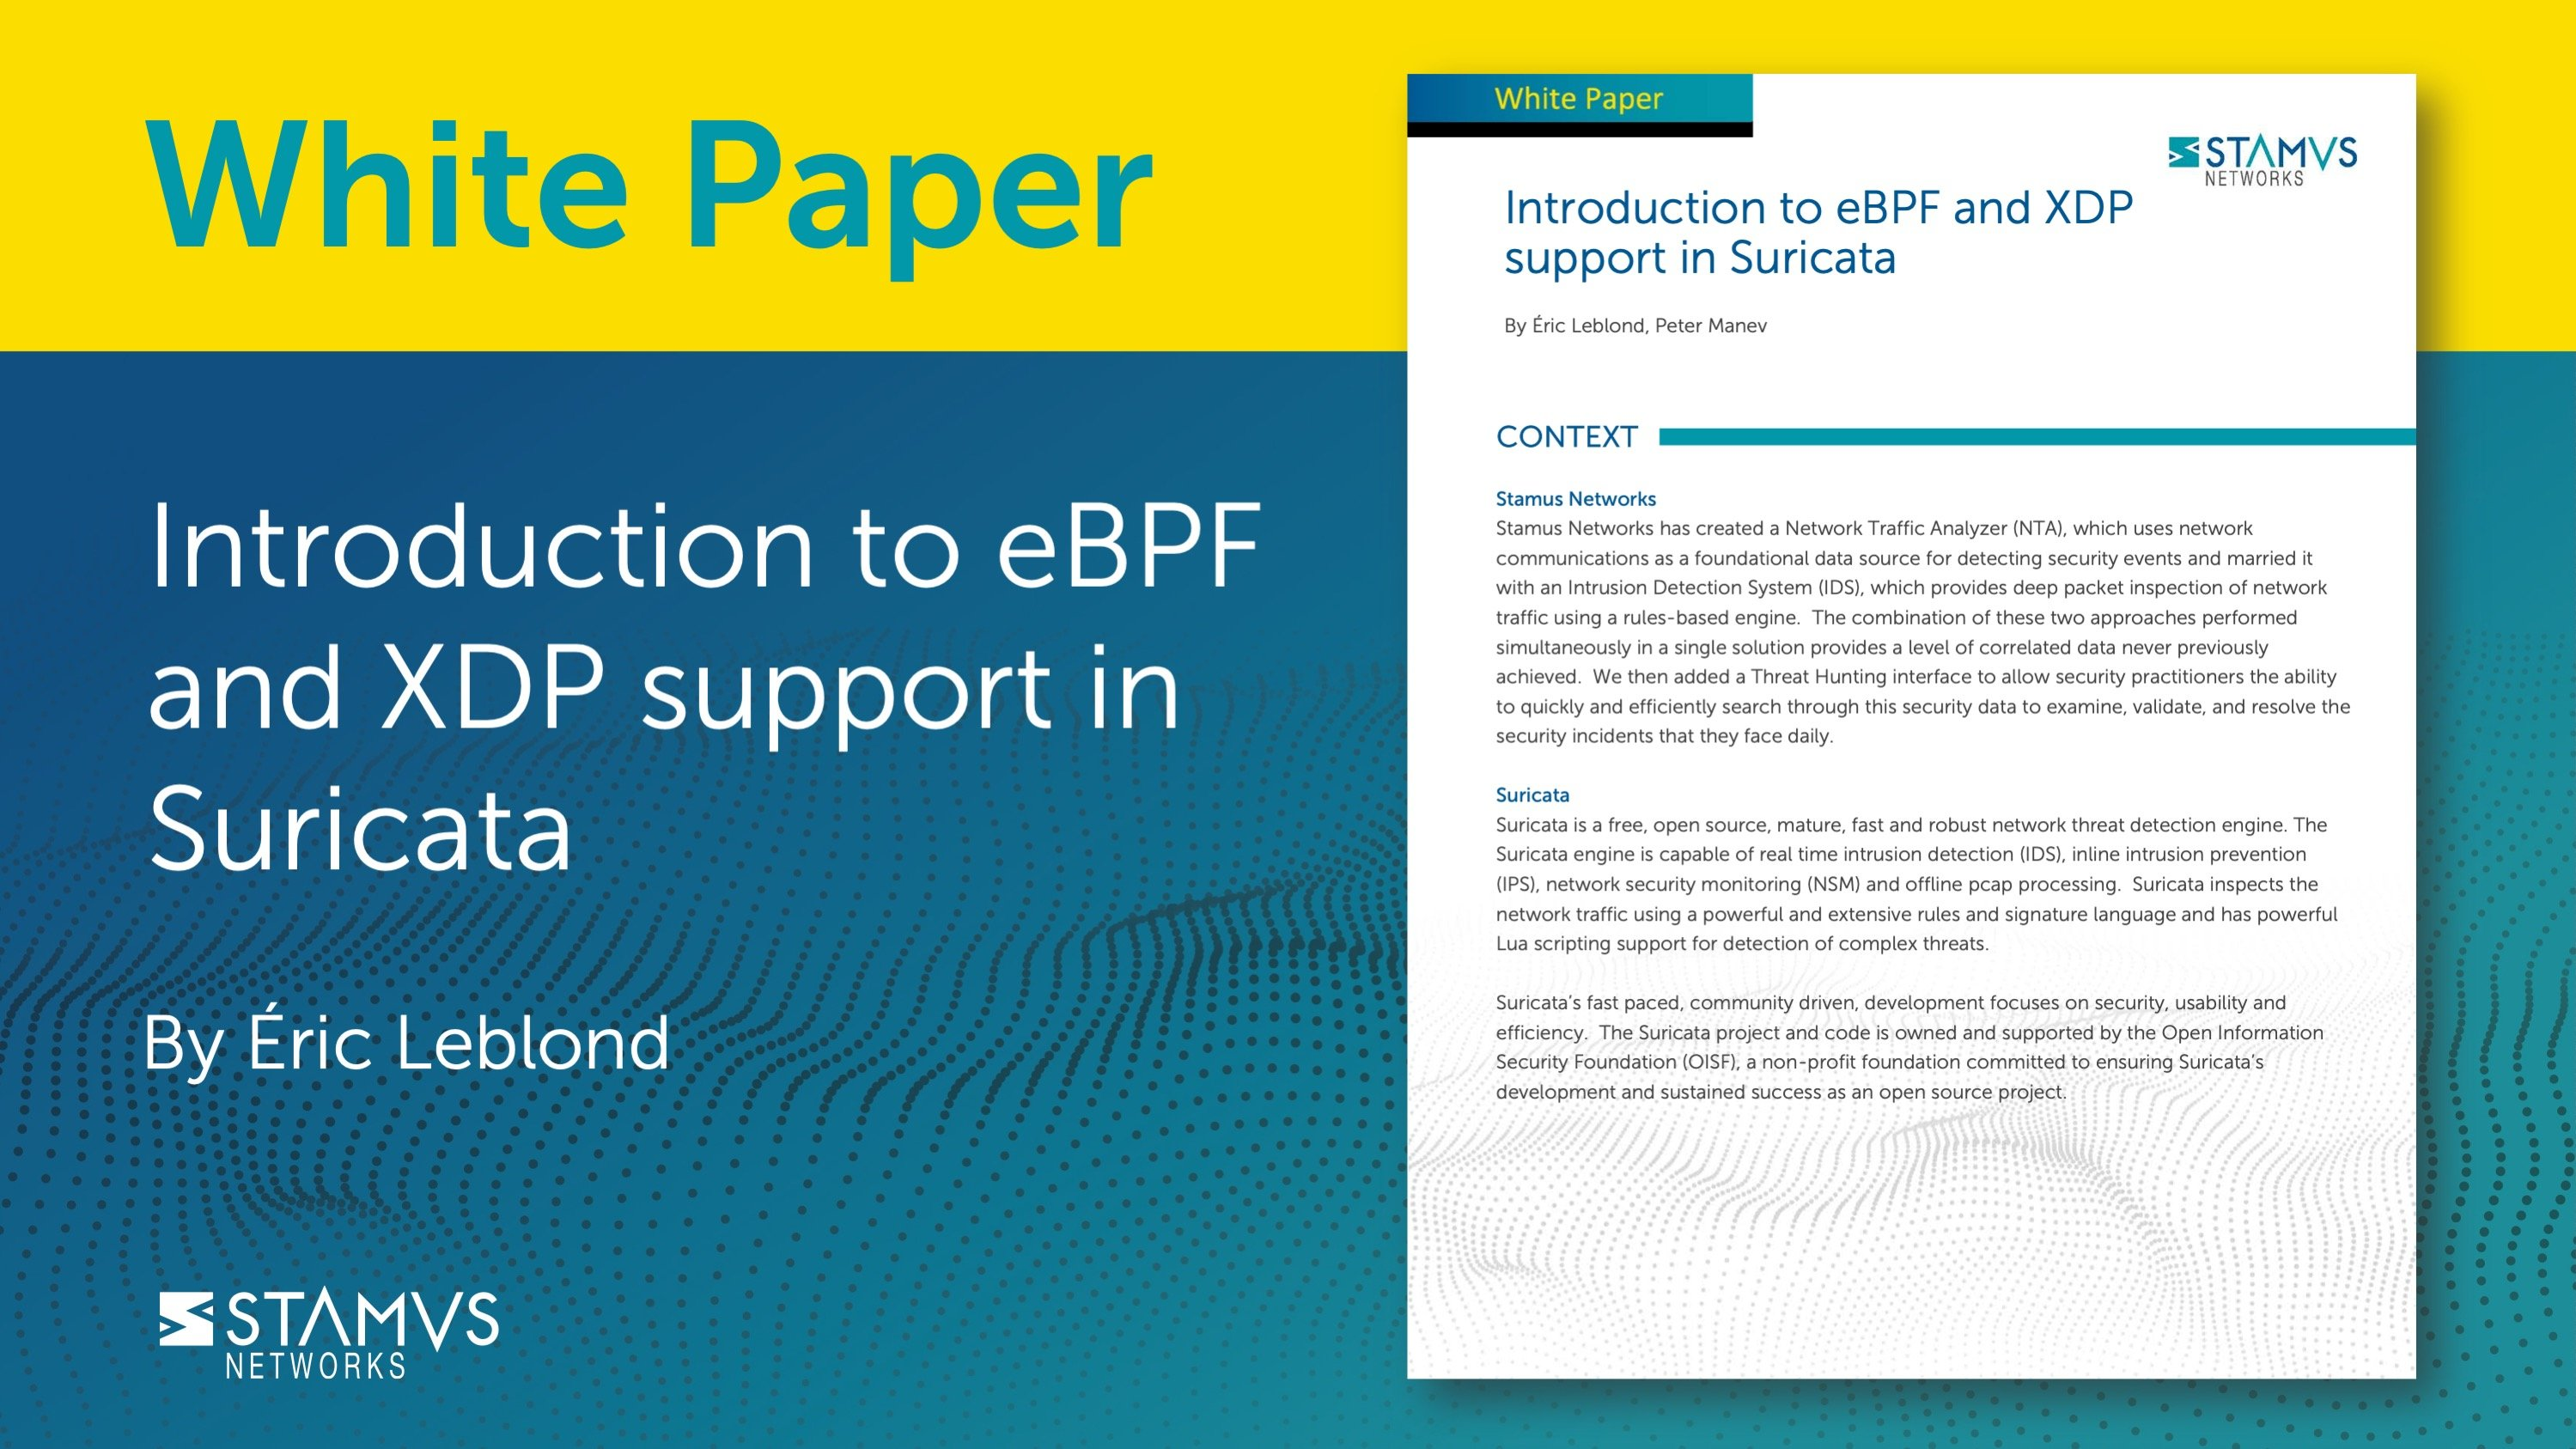 Introduction to eBPF and XDP support in Suricata